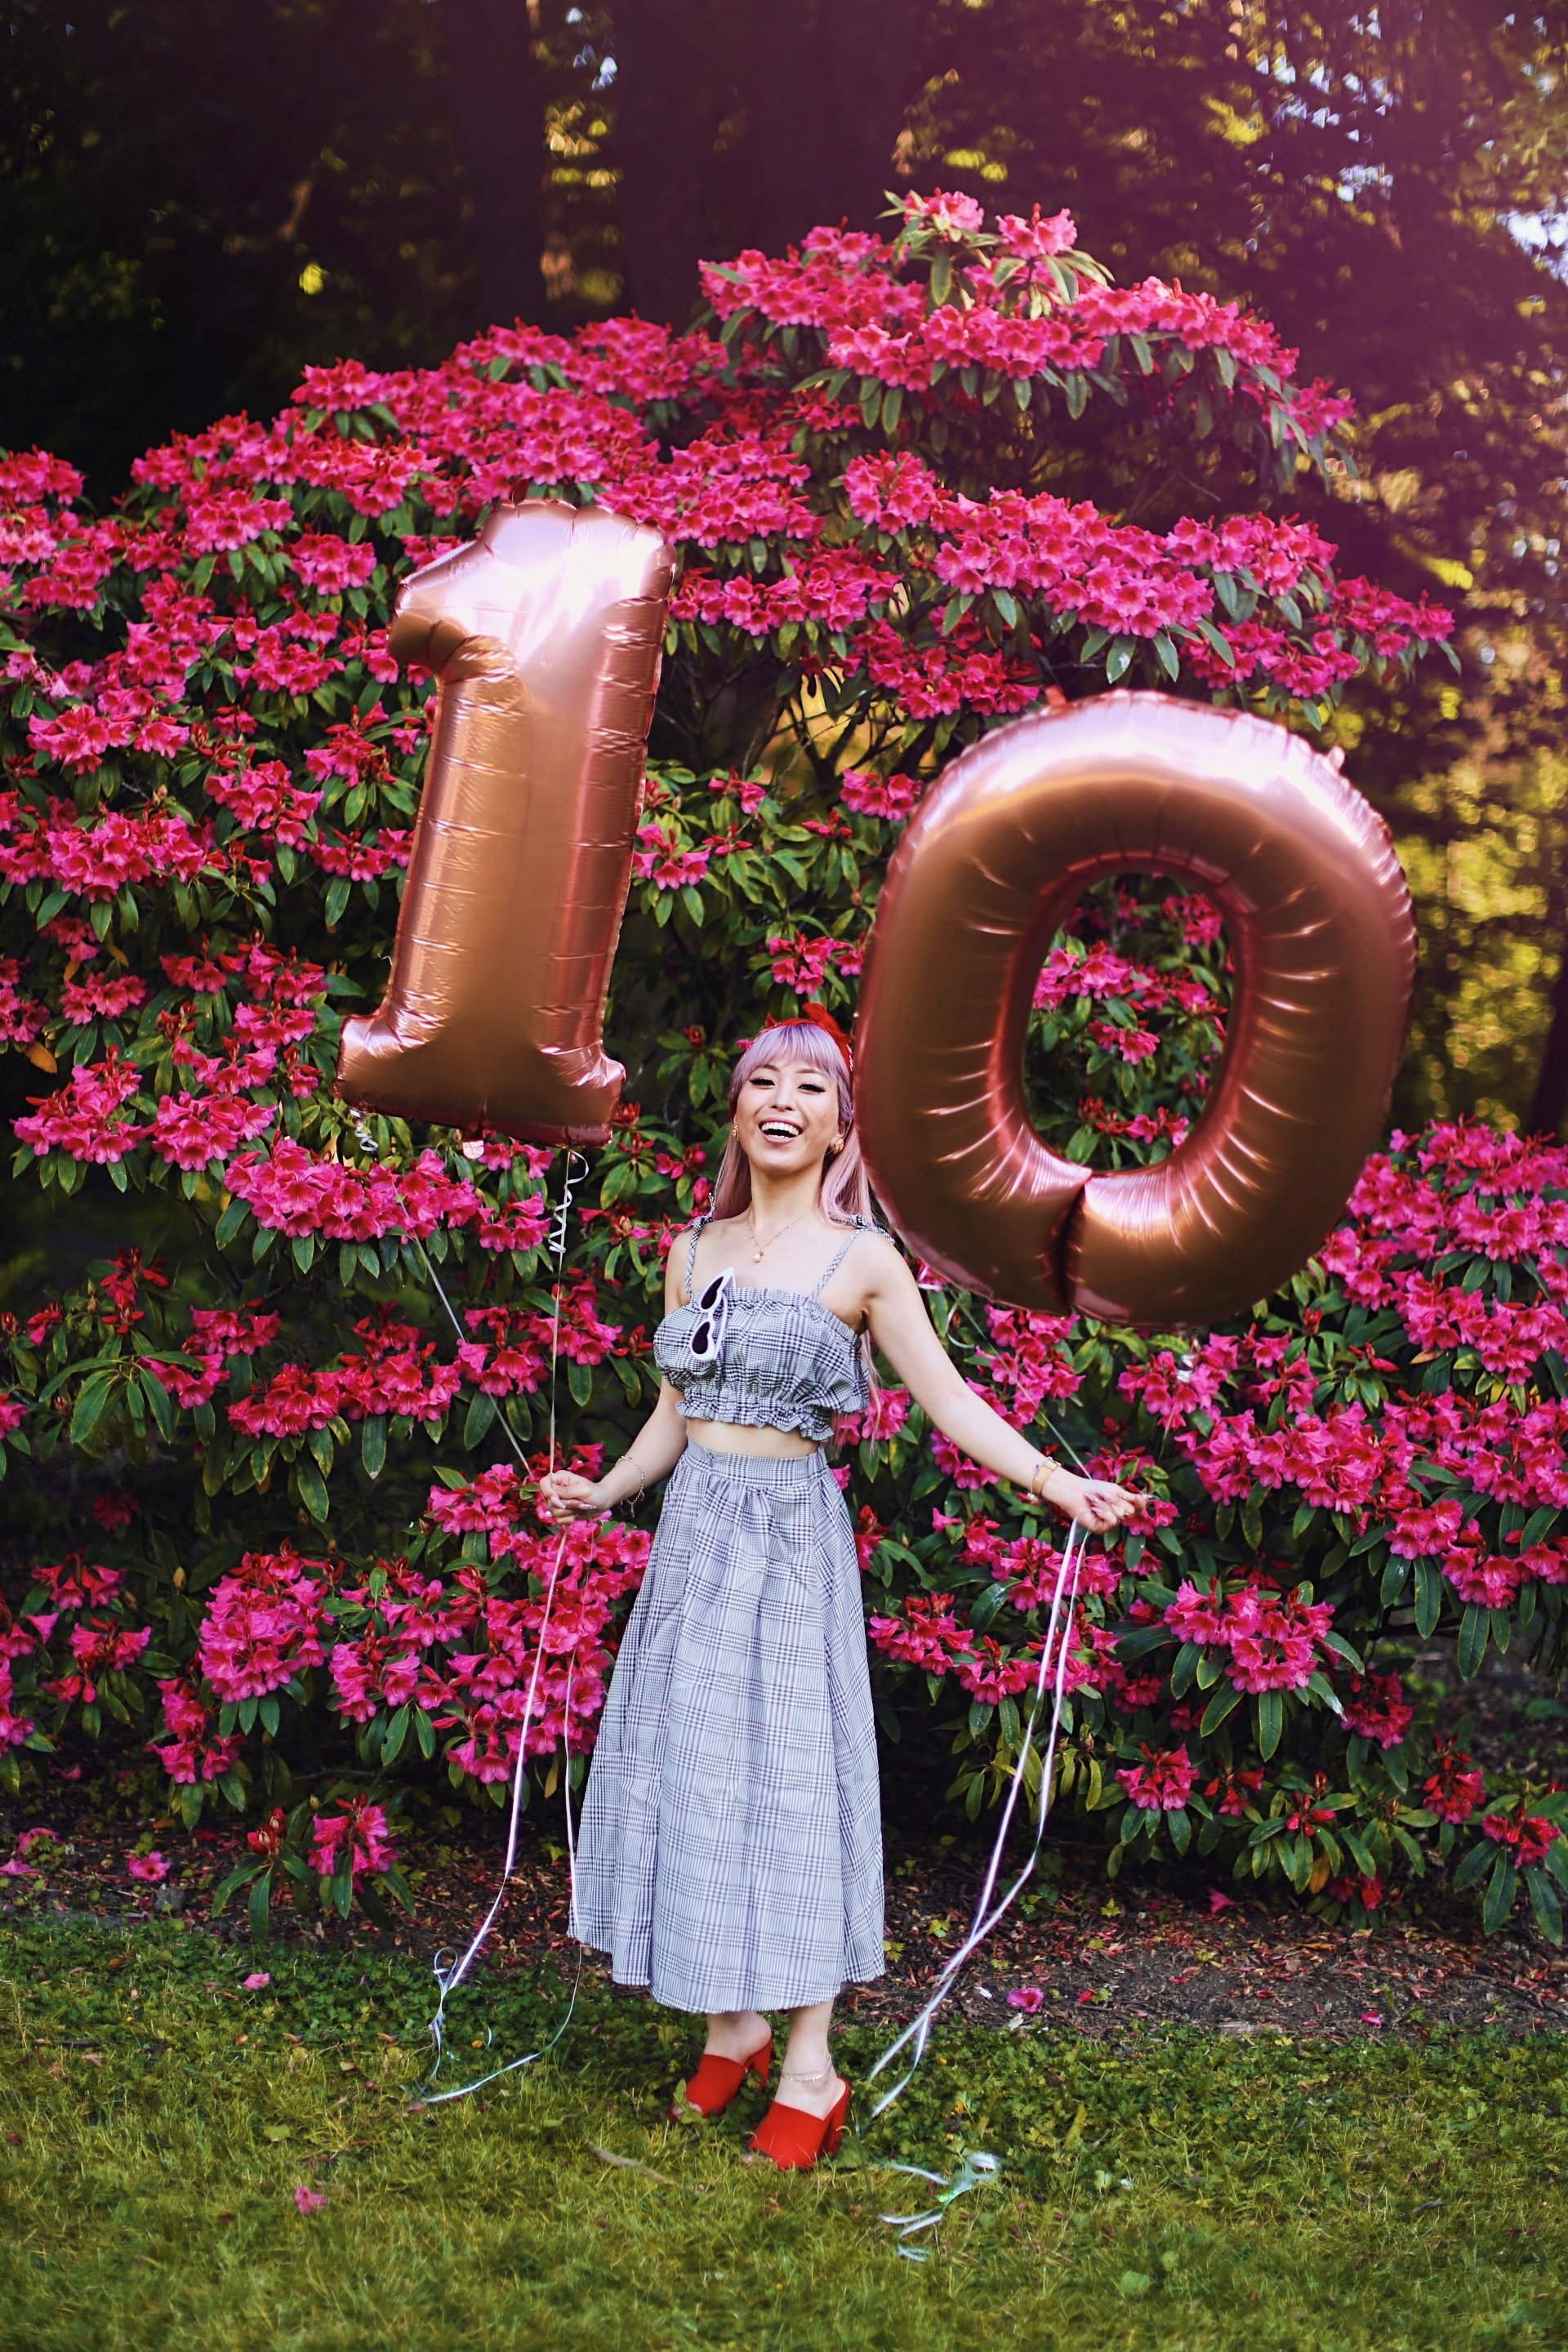 Aika's Love Closet-Seattle Style Life Style Blogger-Japanese-10 Year Anniversary-living in America-what I've learned from Living Abroad-life lessons-pink hair-zero uv heart sunglasses-rose gold balloons-smile 12